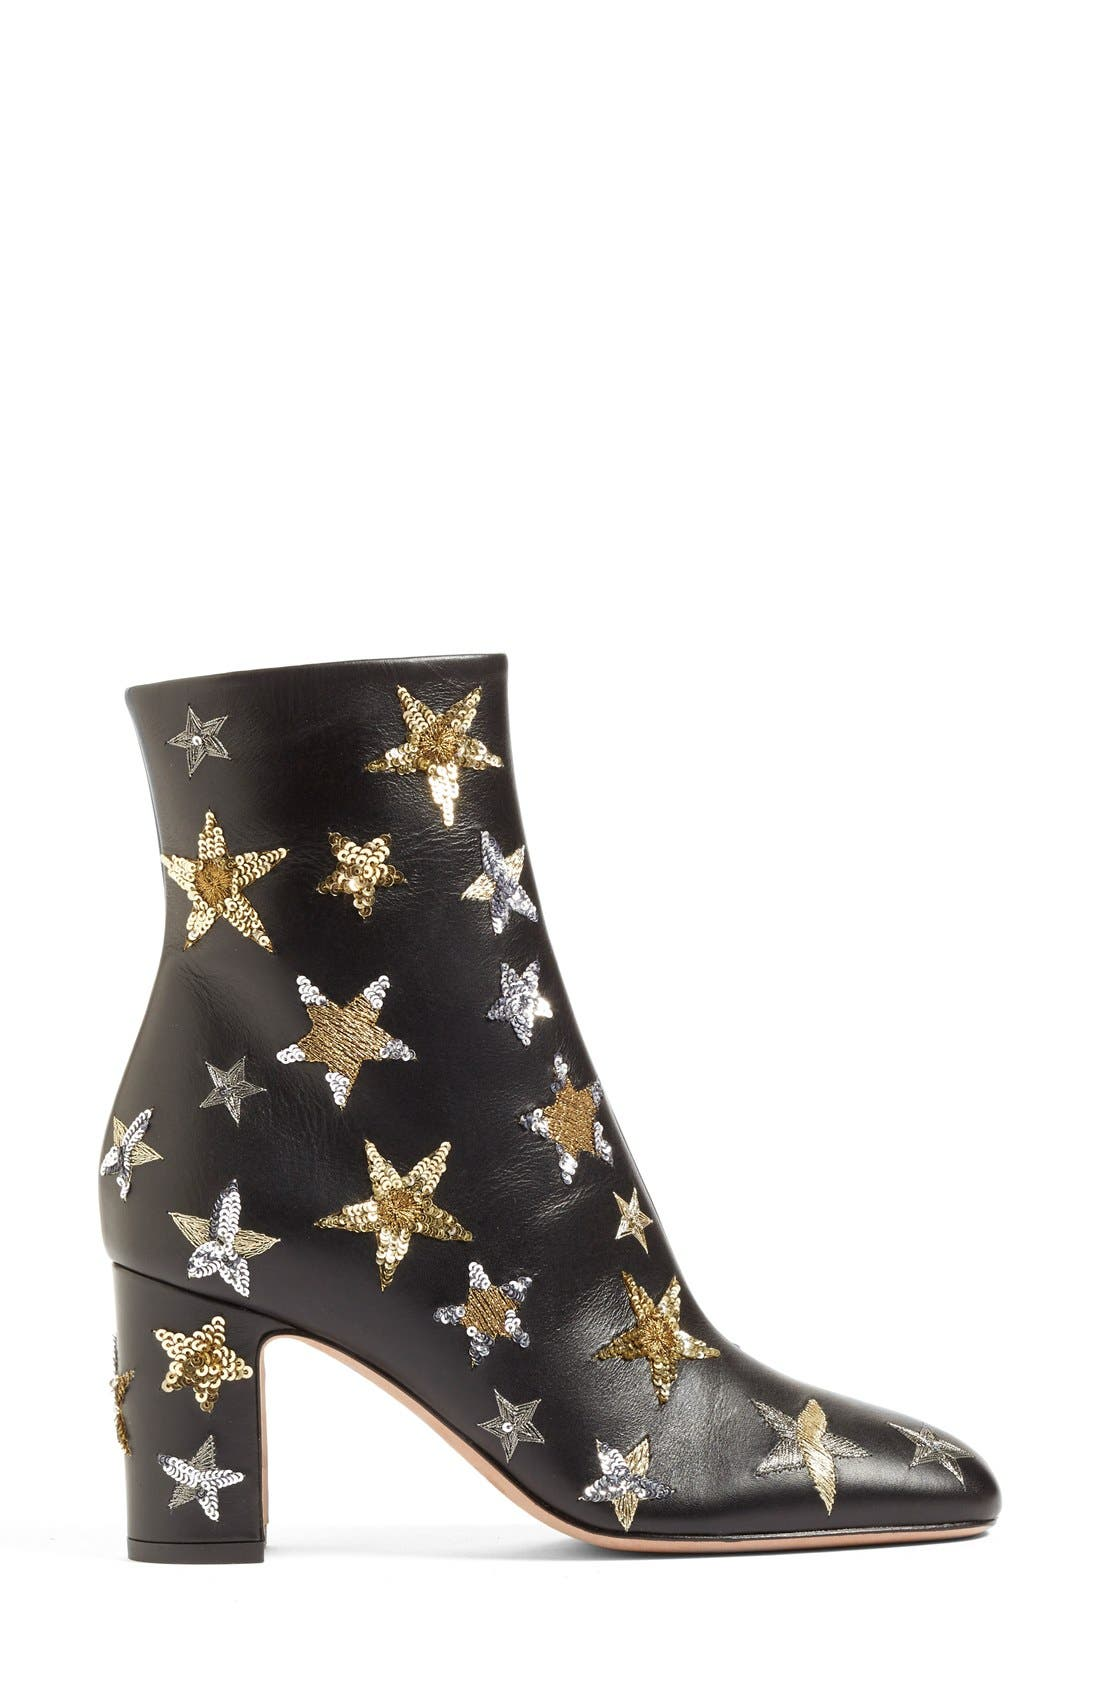 VALENTINO,                             'Star Studded' Bootie,                             Alternate thumbnail 2, color,                             002